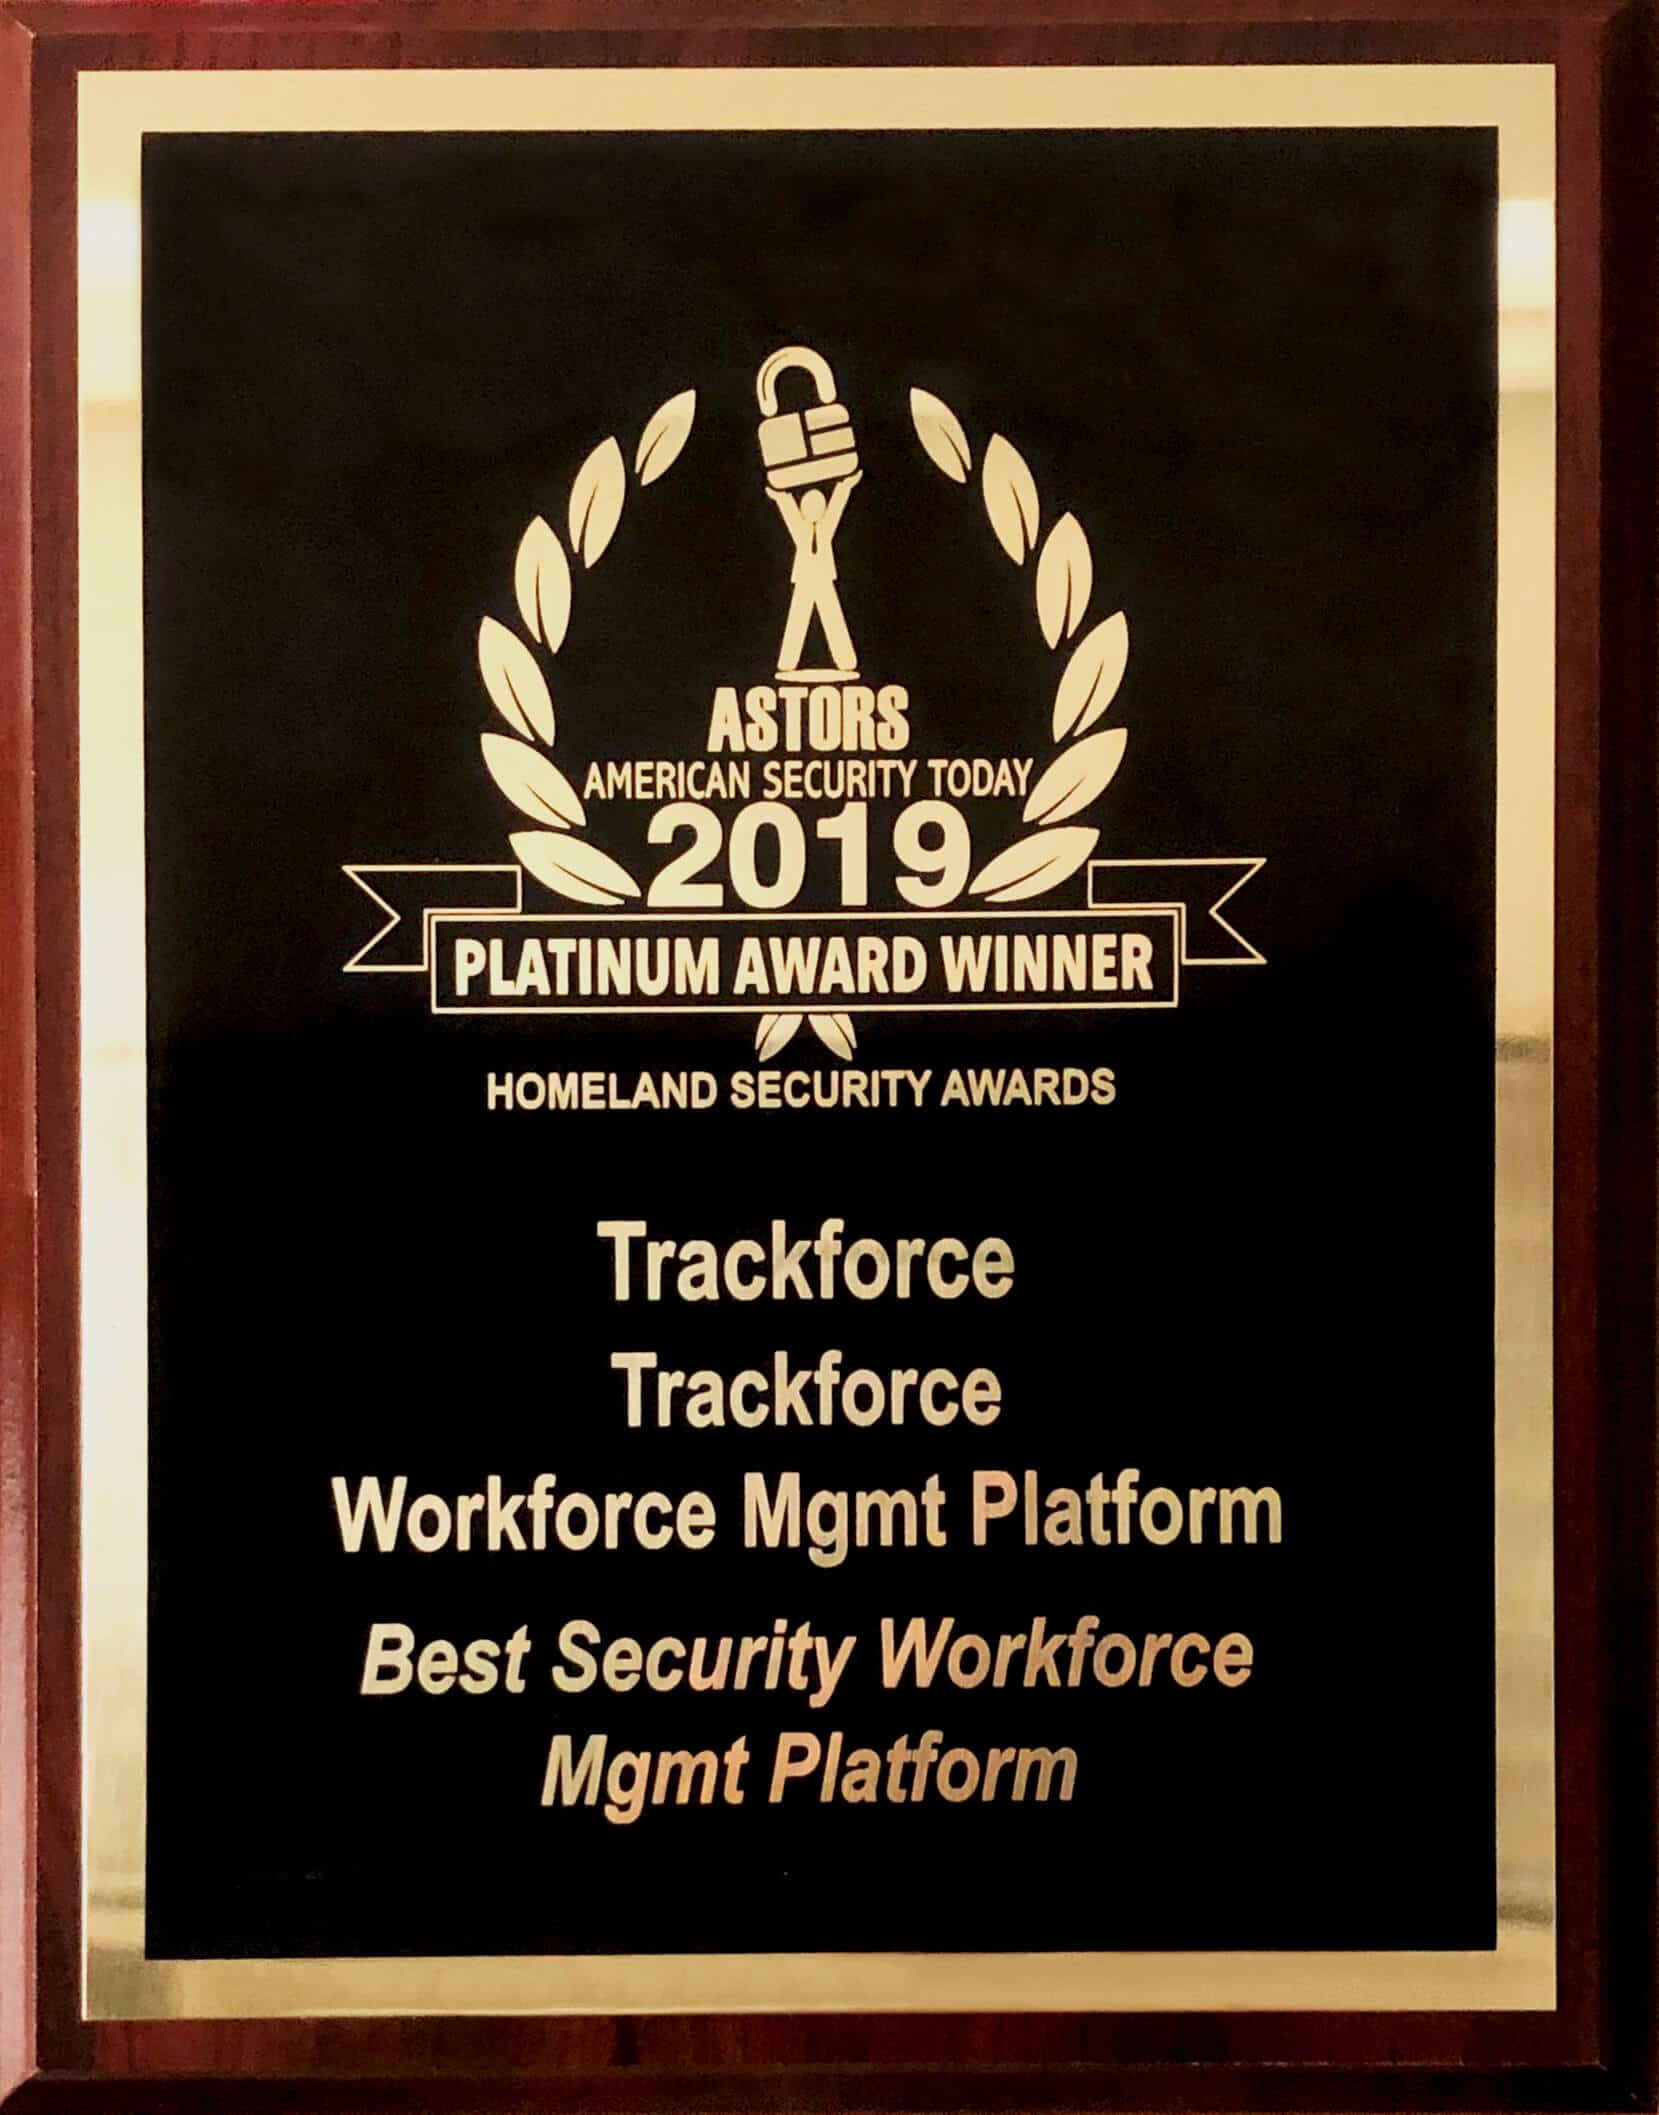 Trackforce Valiant Beats Out Competition for Coveted ASTORS Award